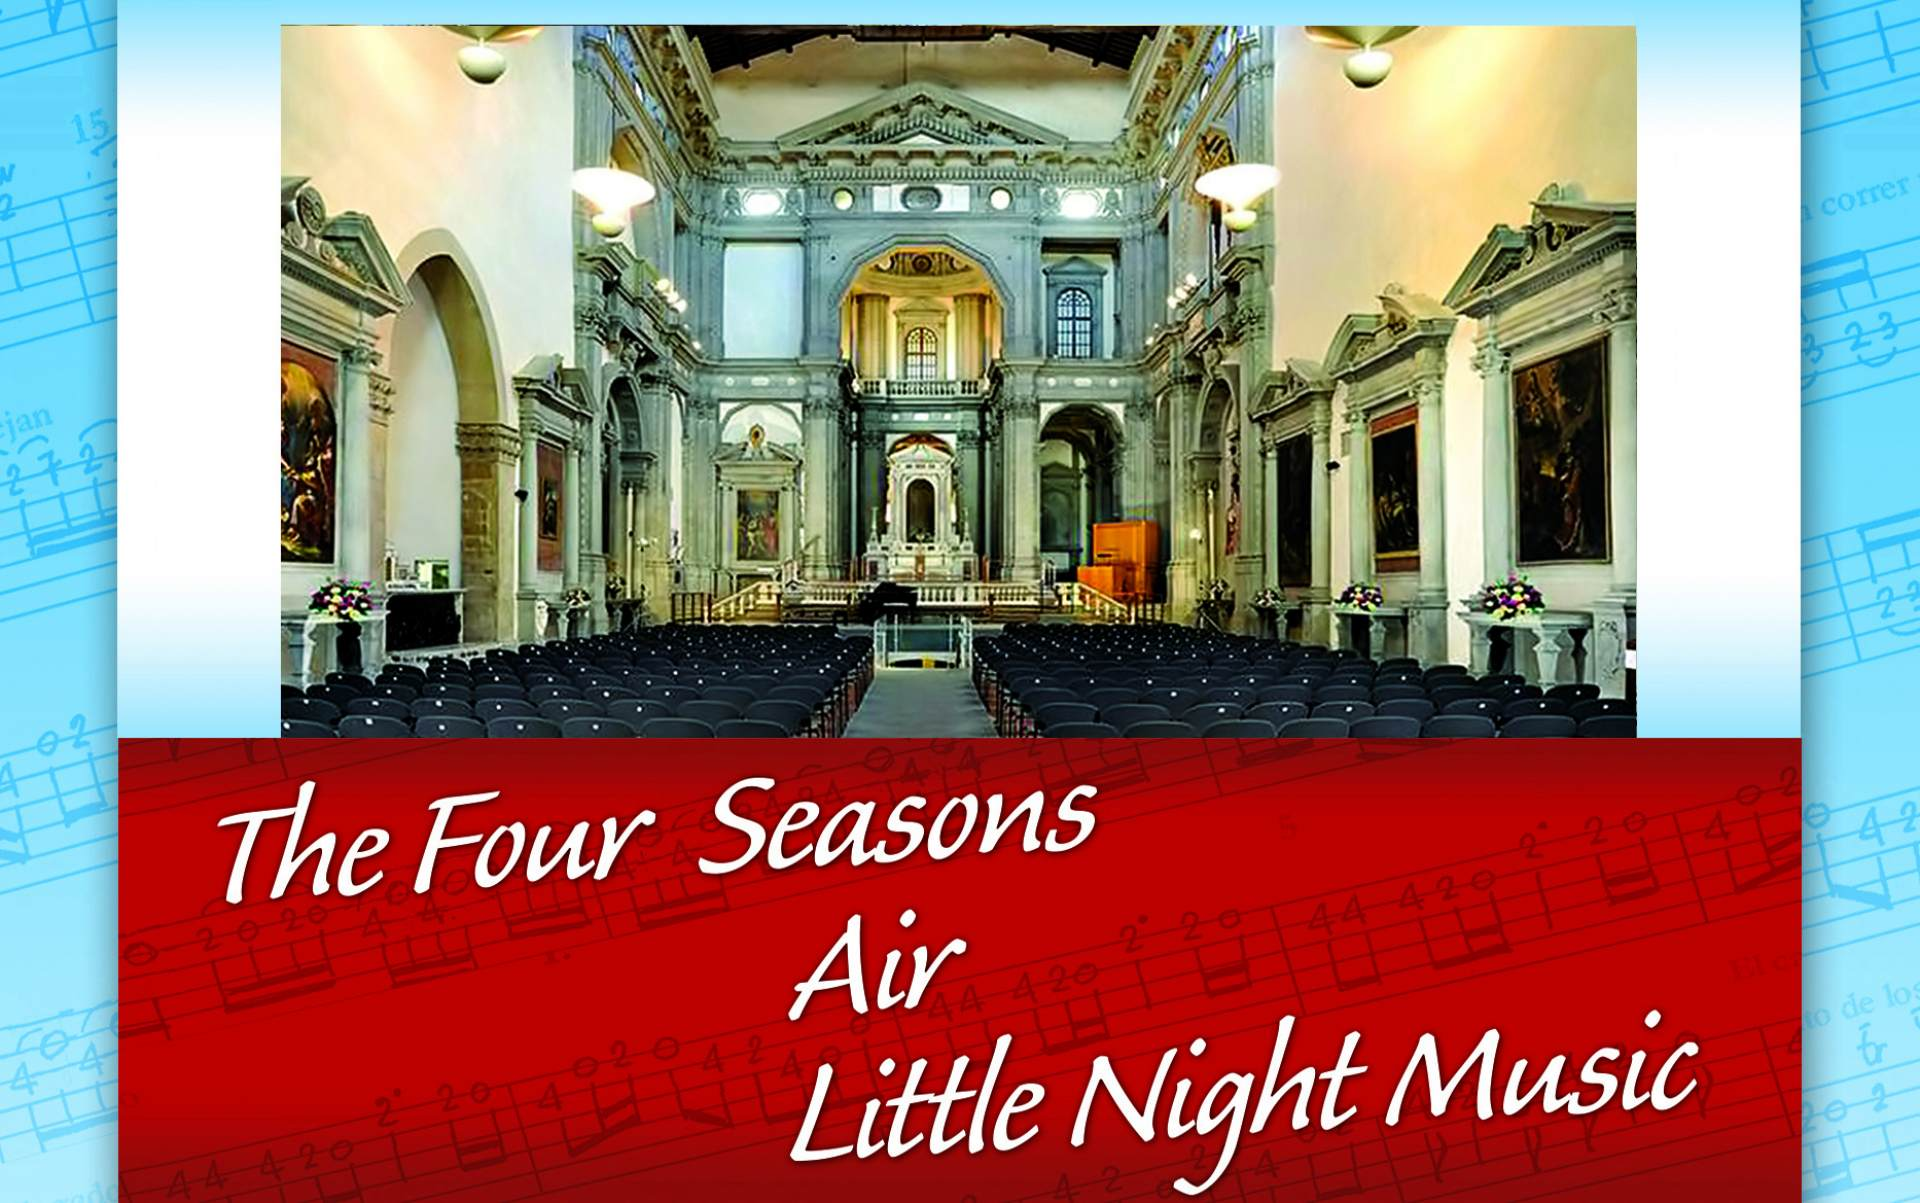 The Four Seasons - Air - Litter Night Music